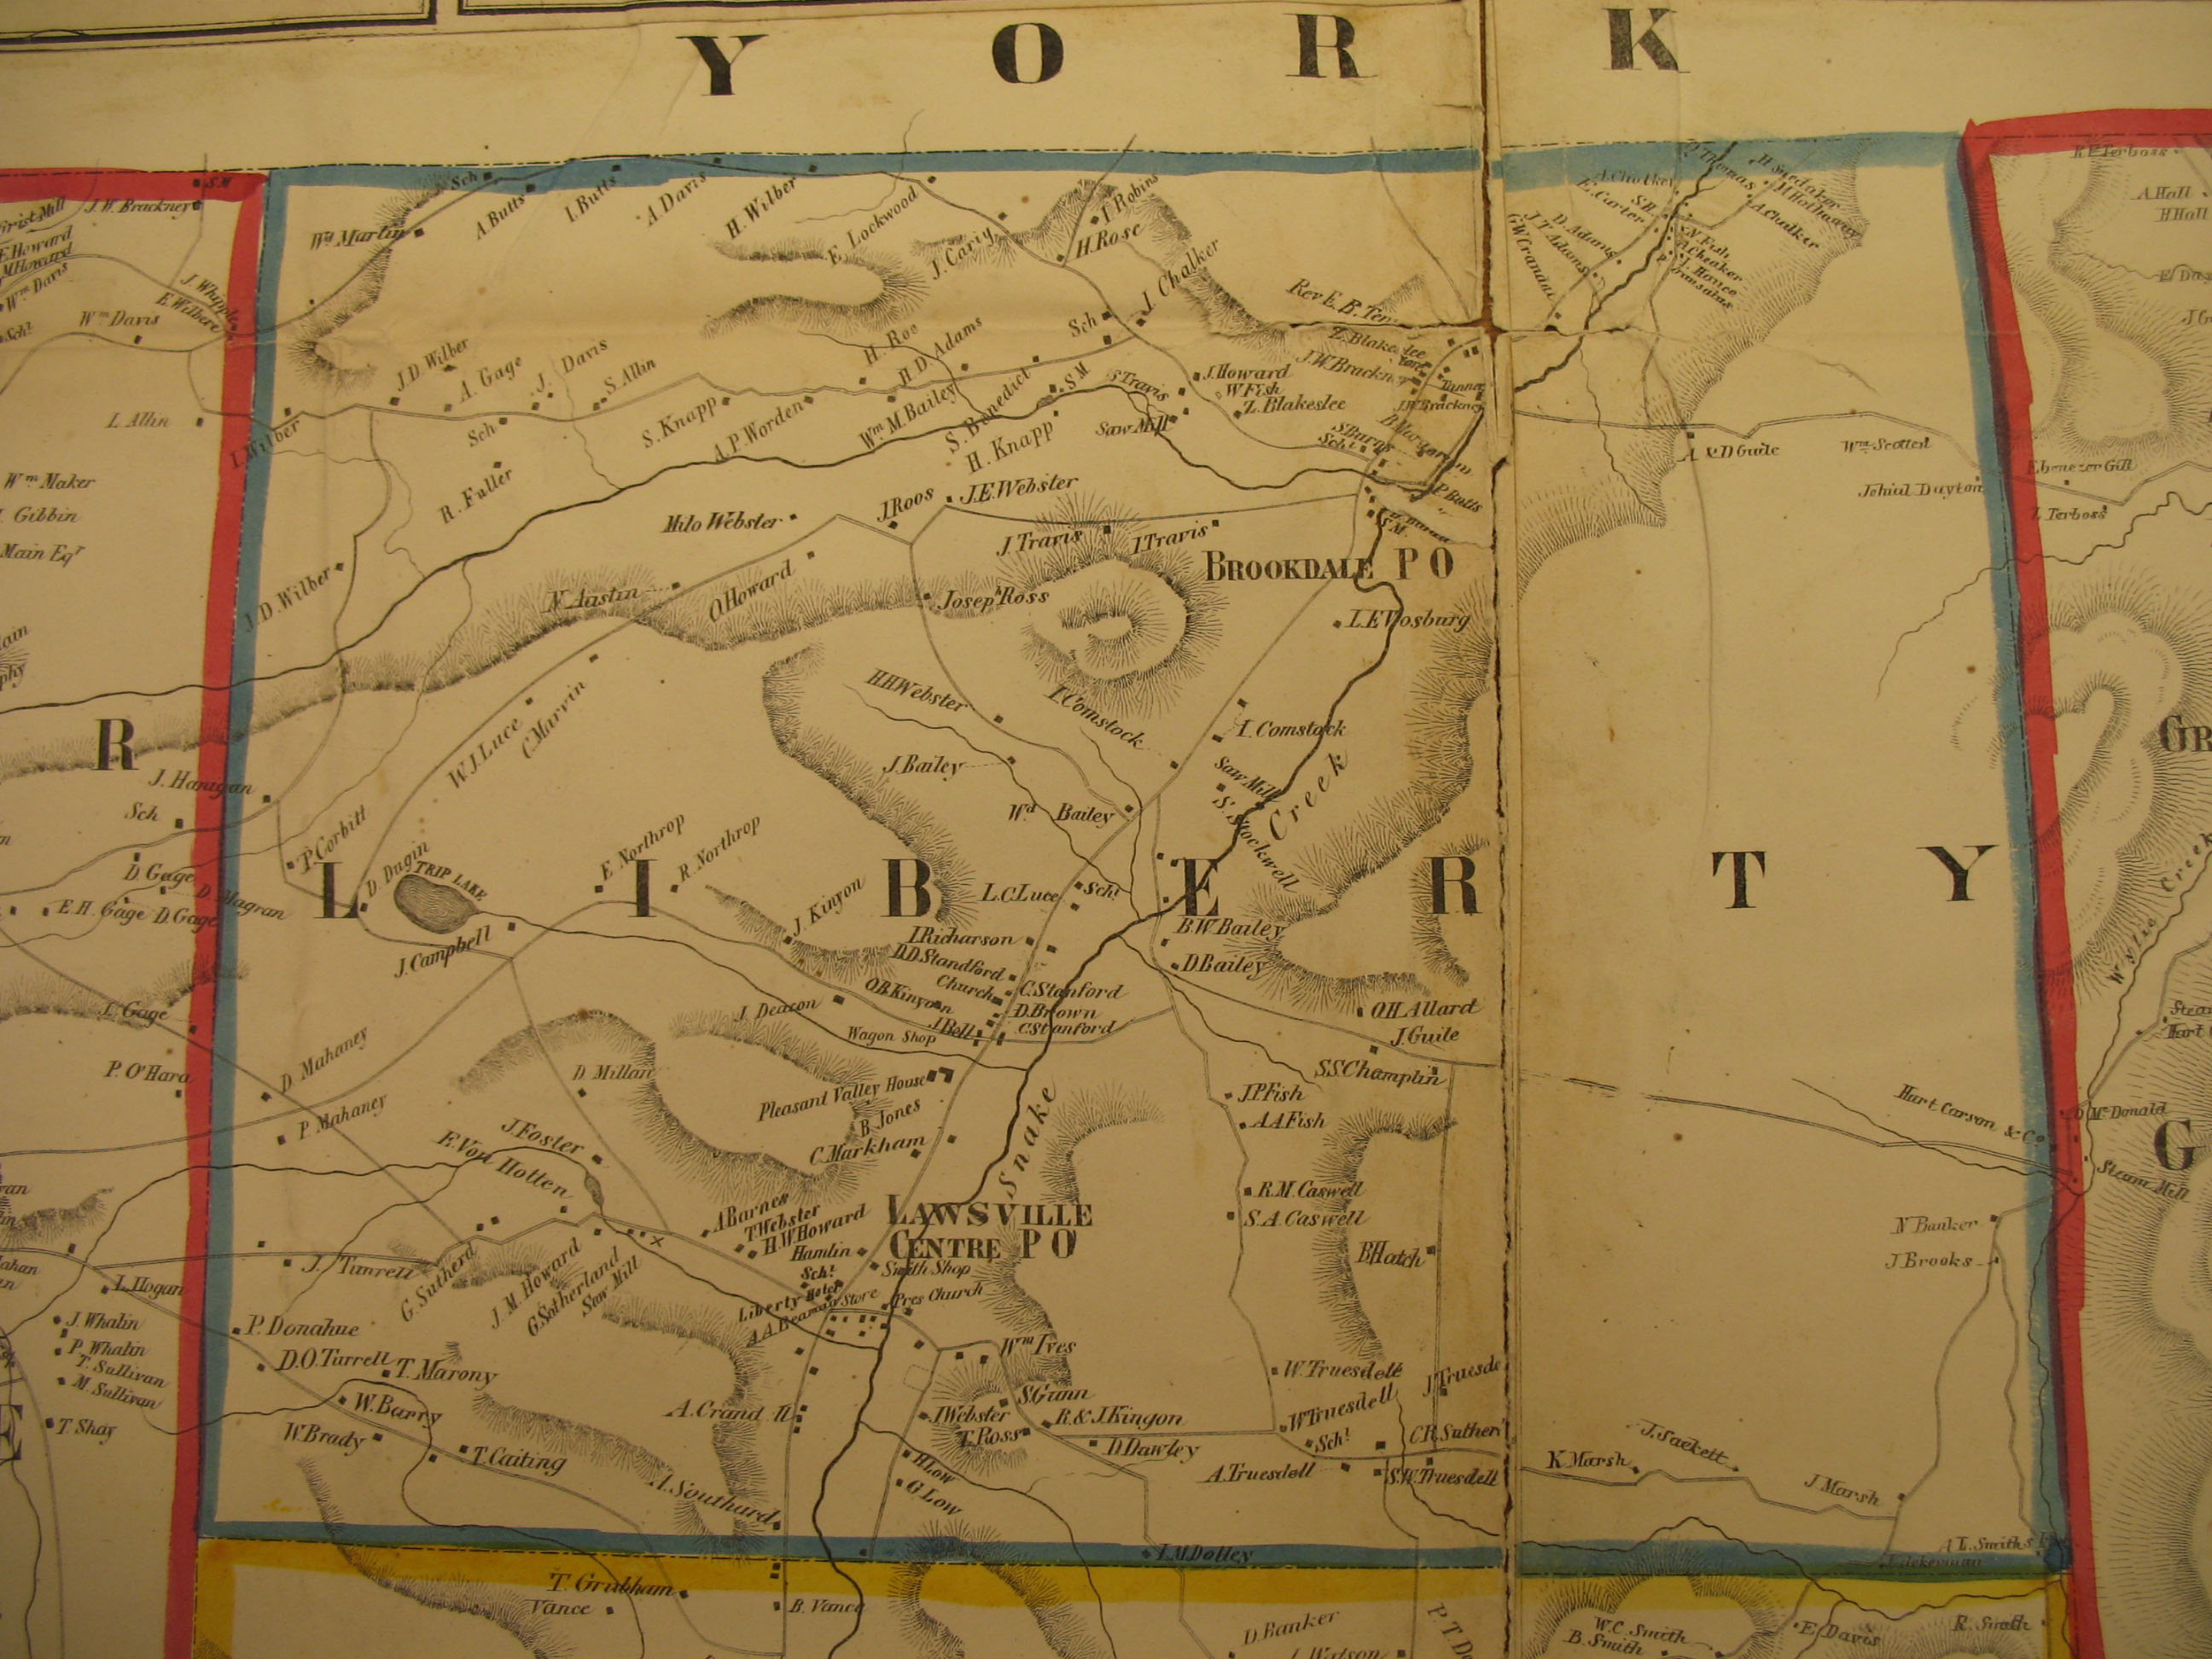 Map of Susquehanna County, Pennsylvania. From Actual Survey by G. M. Hopkins, C. E. (Philadelphia: Lee & Marsh Publishers, 1858). Source: http://ancestortracks.com/Susquehanna_Resources.html